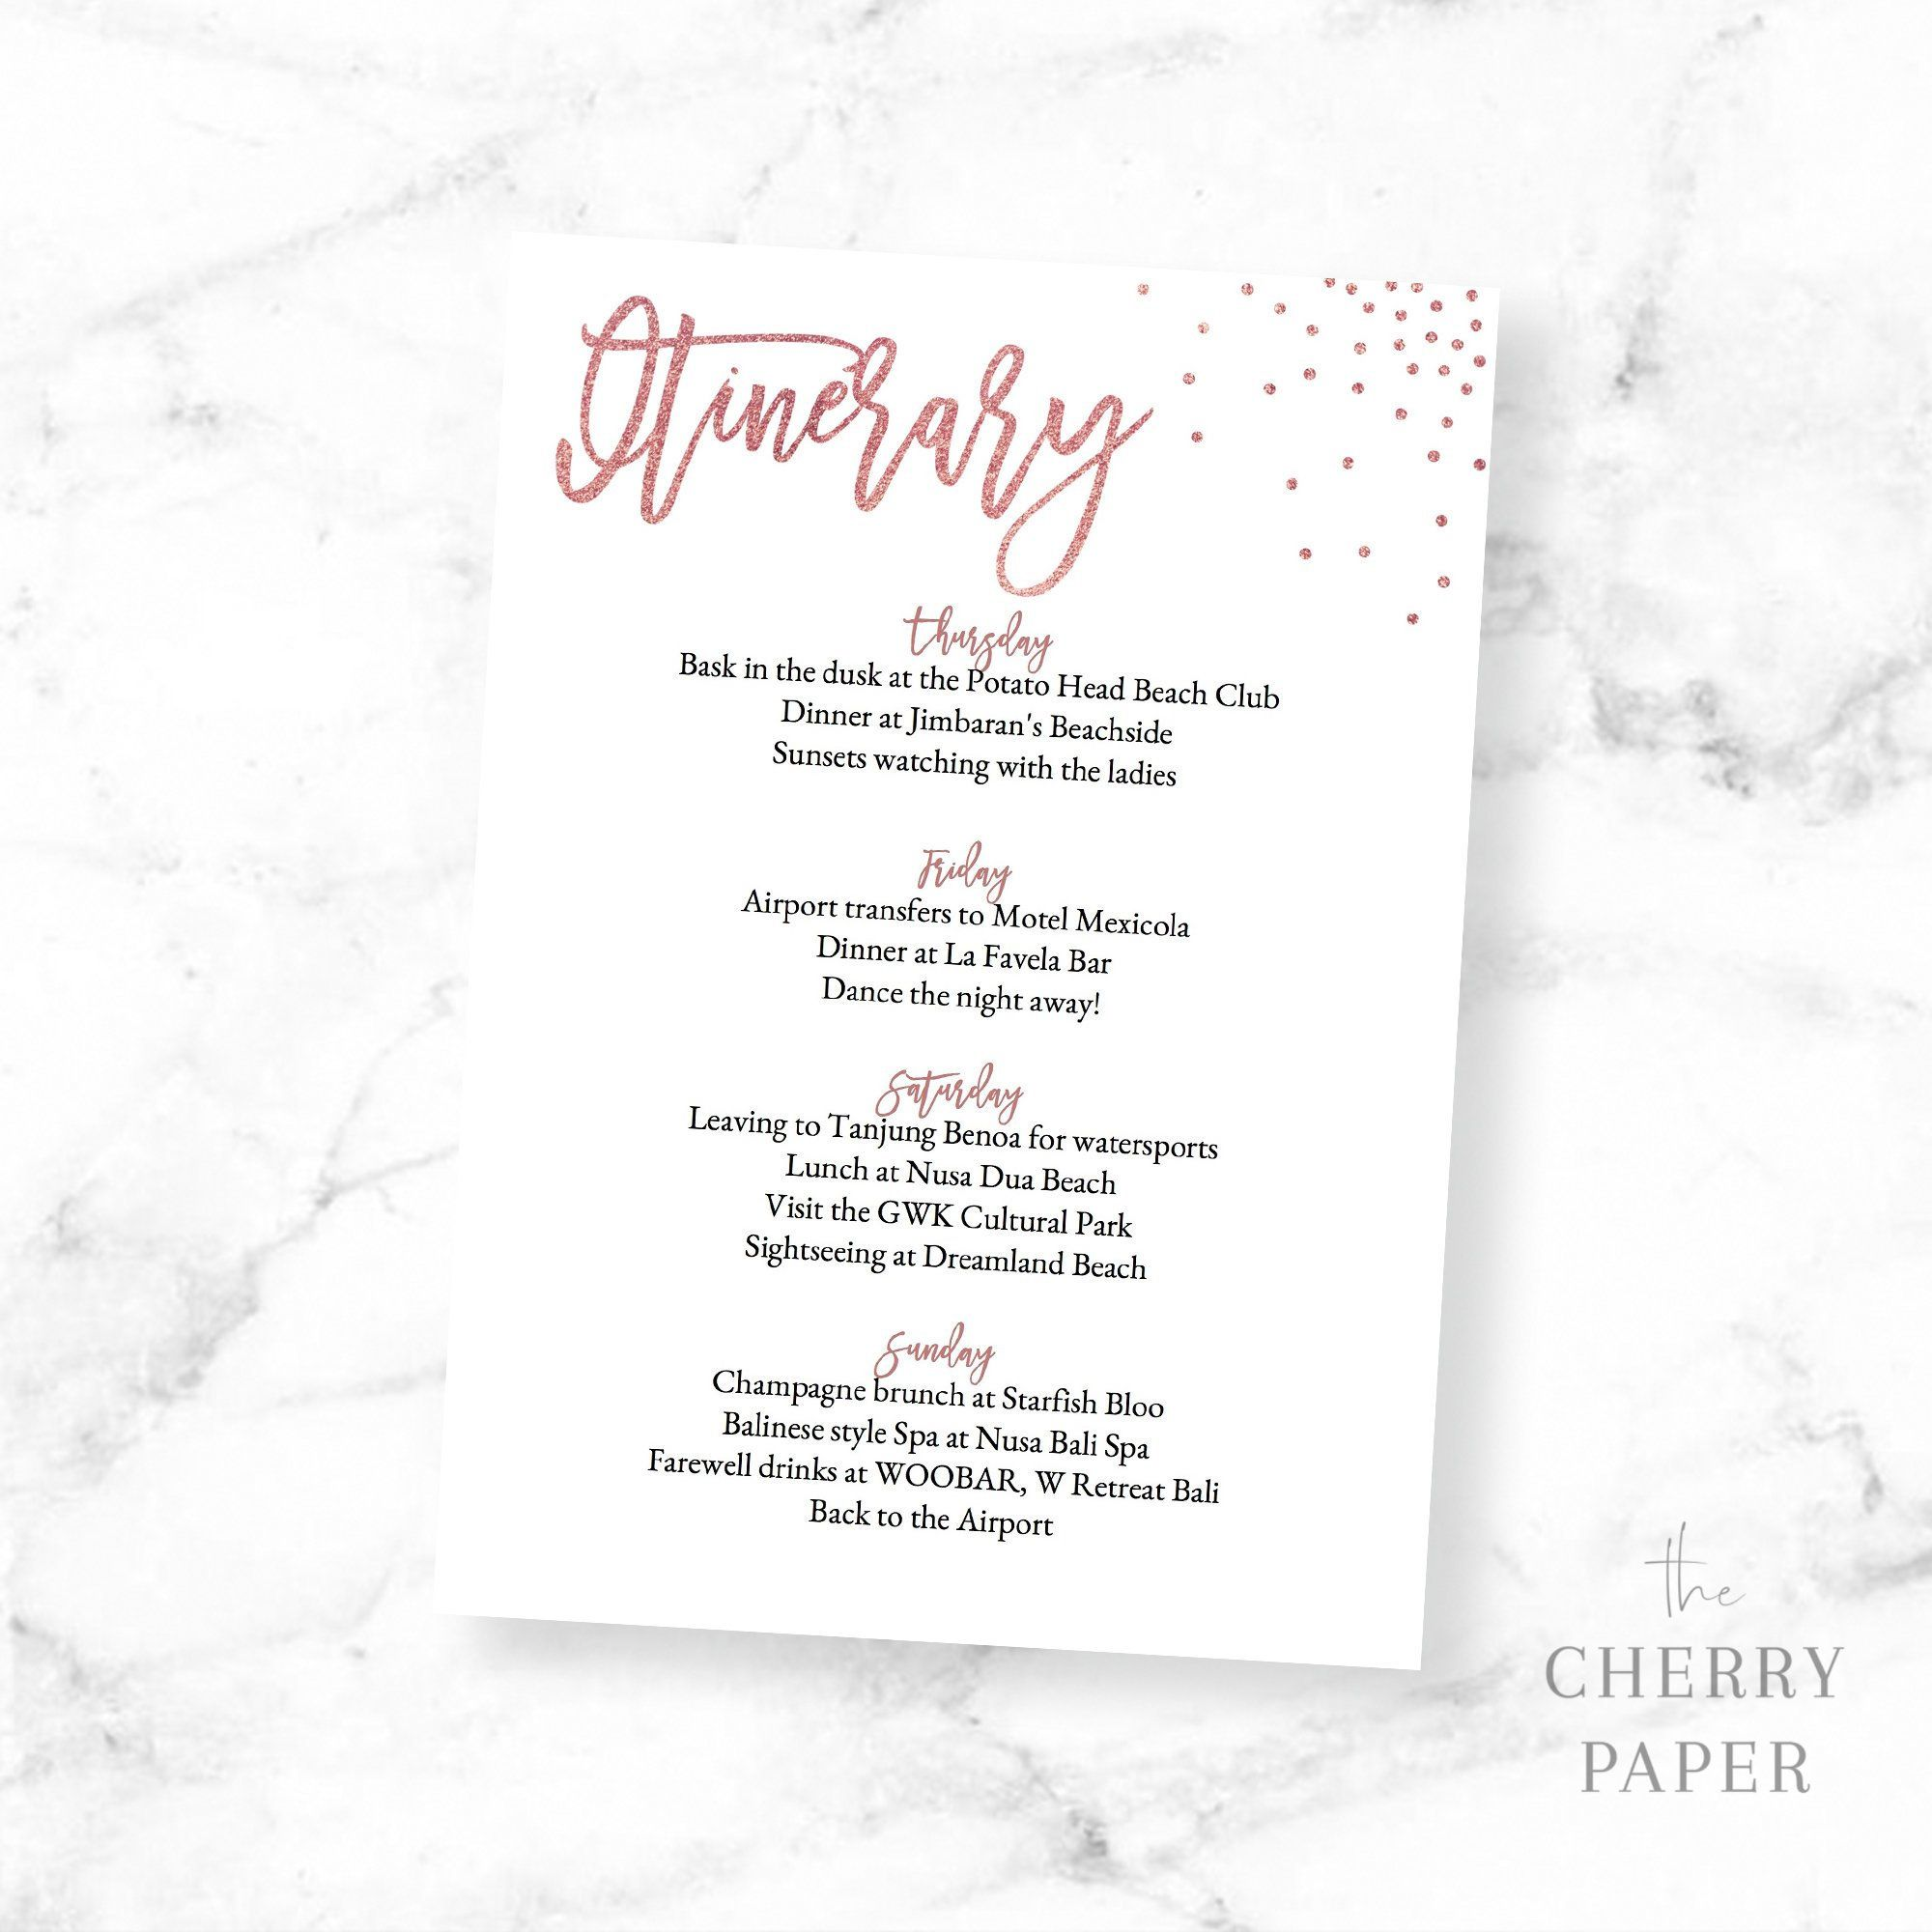 4 Day Itinerary Card Itinerary Template Rose Gold Editable Etsy Itinerary Template Bachelorette Weekend Invitations Editable Invitations